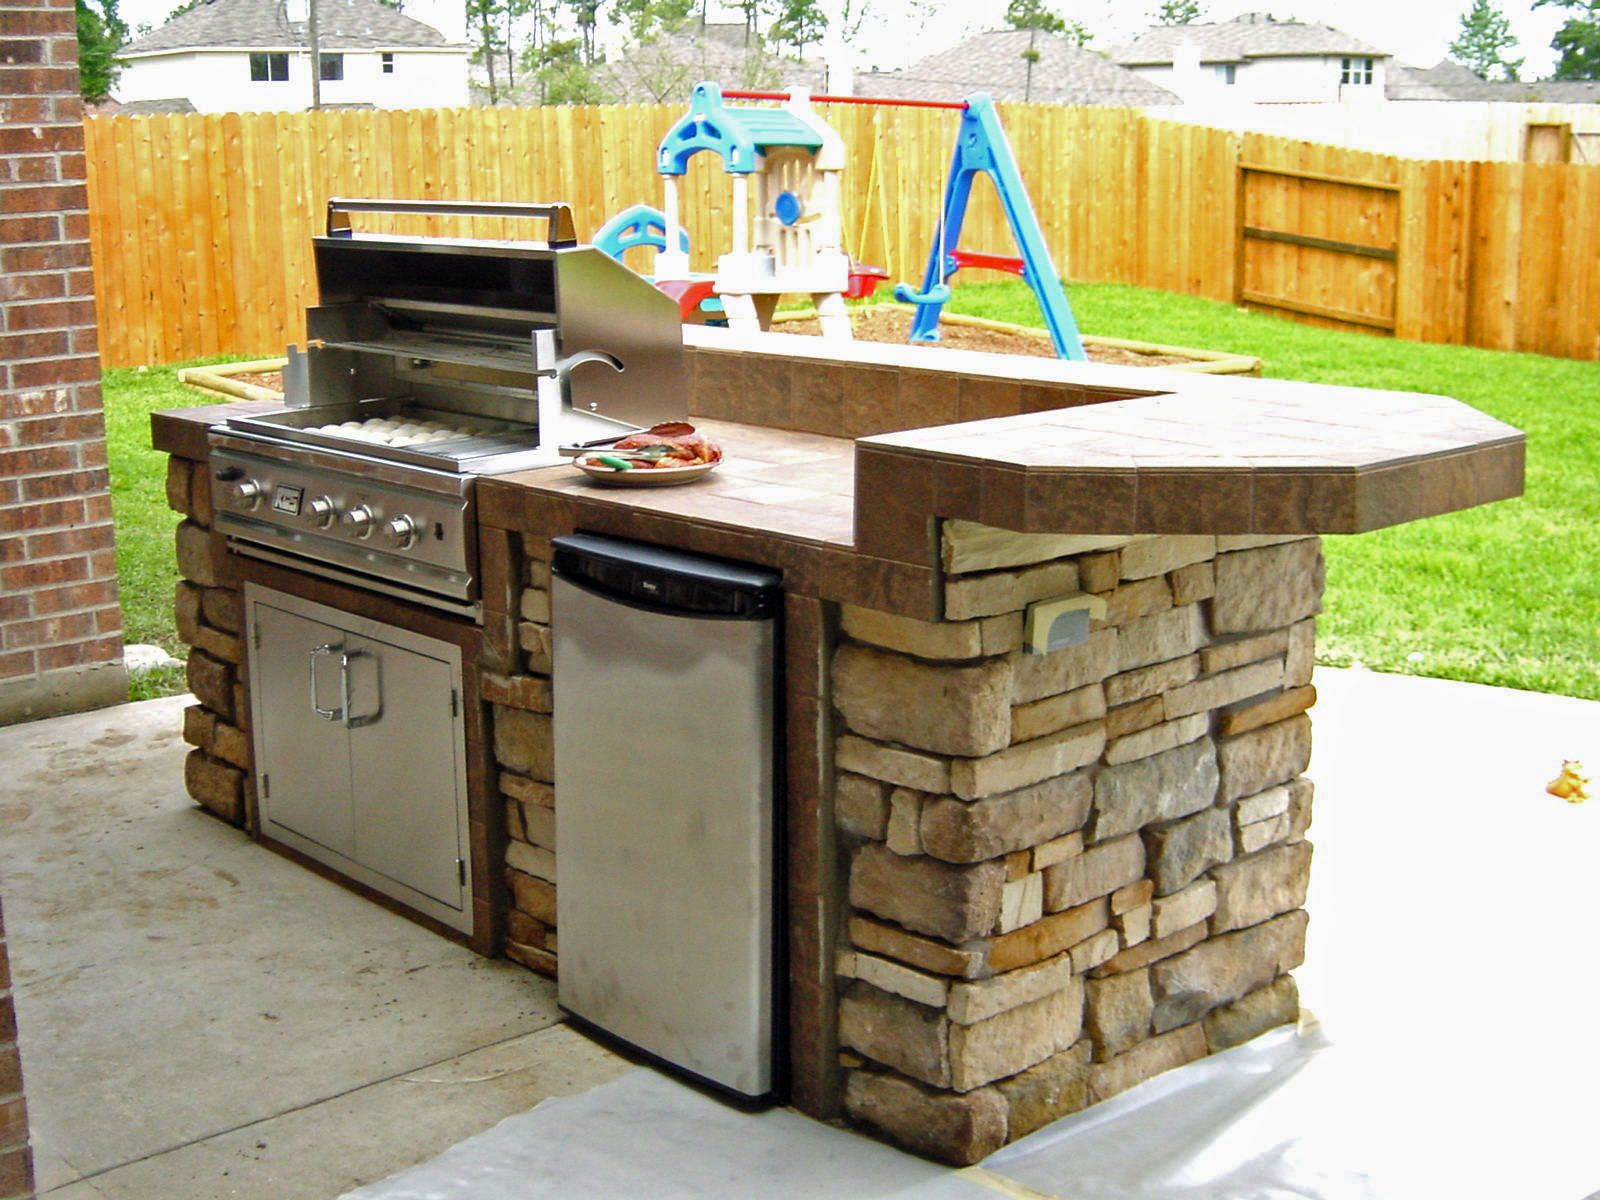 Outdoor Kitchen For Small Spaces Small Outdoor Kitchens Small Outdoor Kitchen Design Outdoor Kitchen Countertops